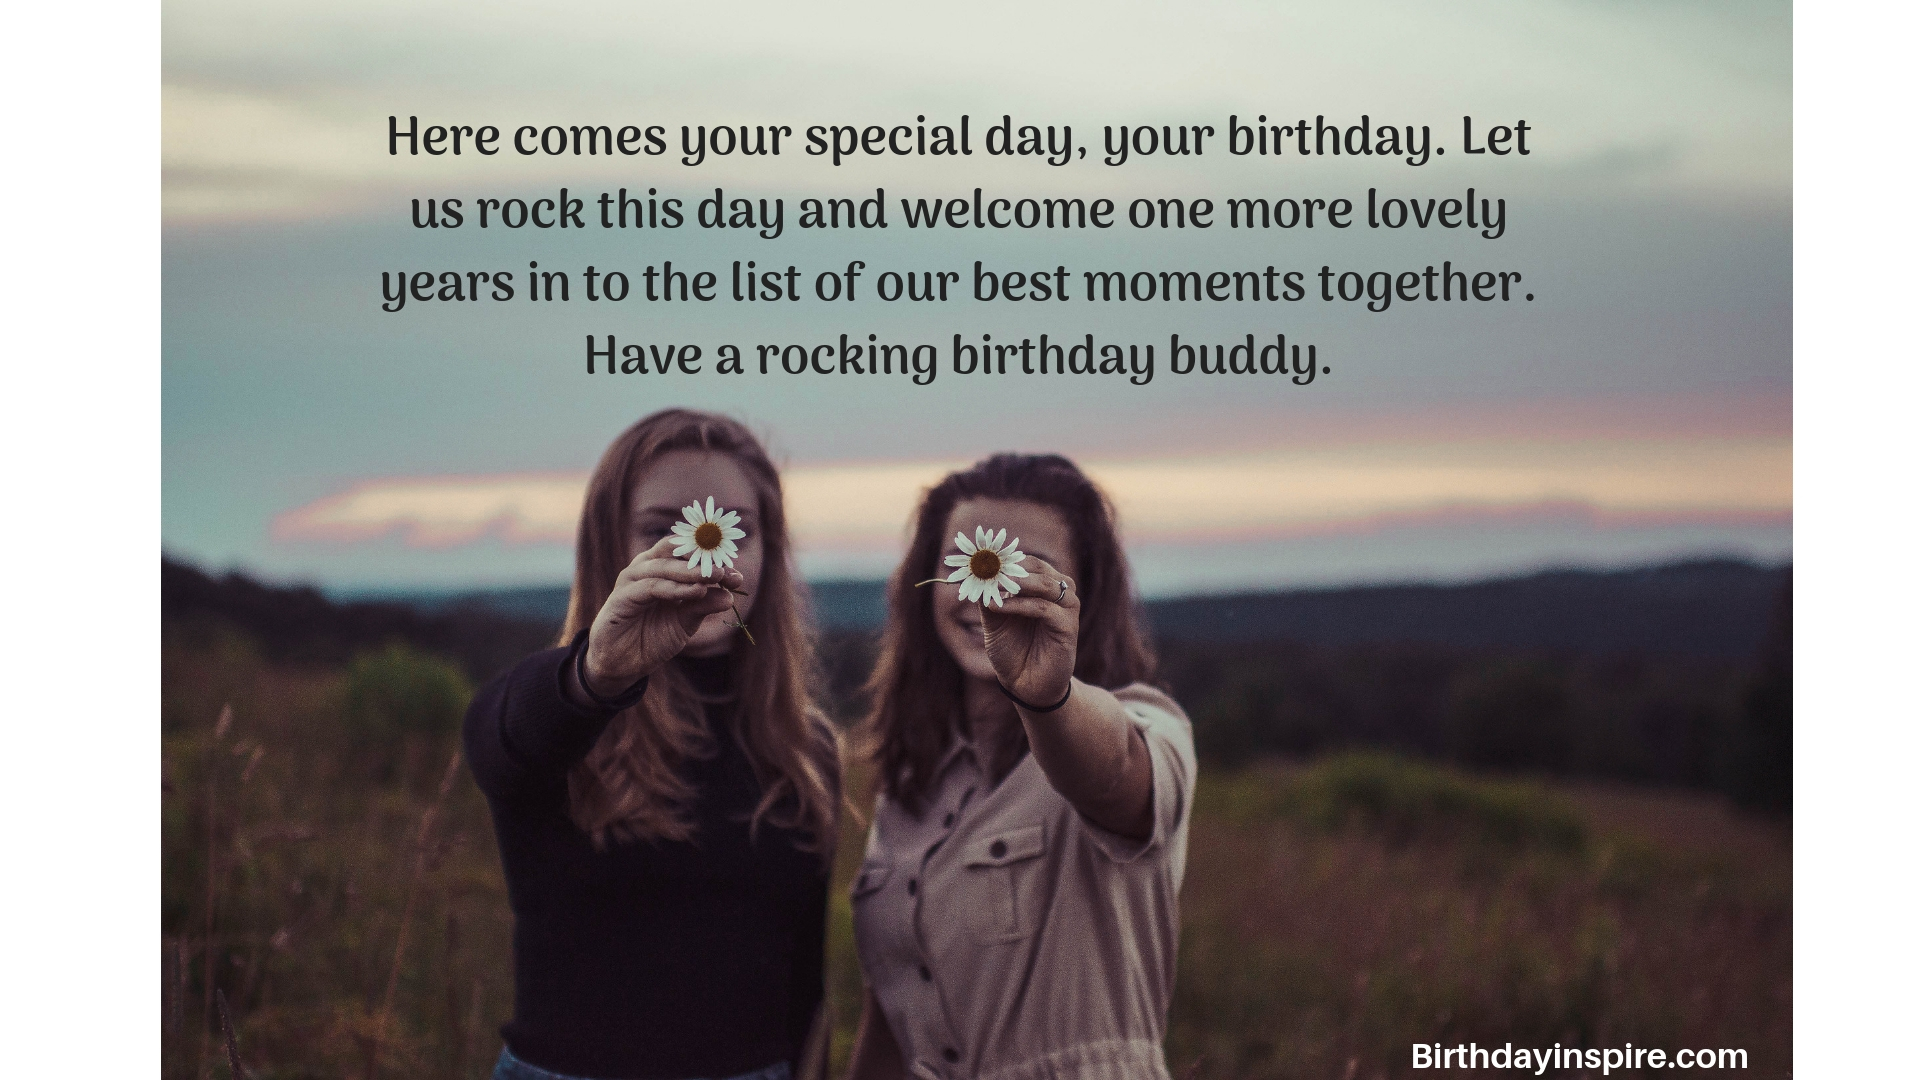 touching birthday wishes for best friendbirthday inspire